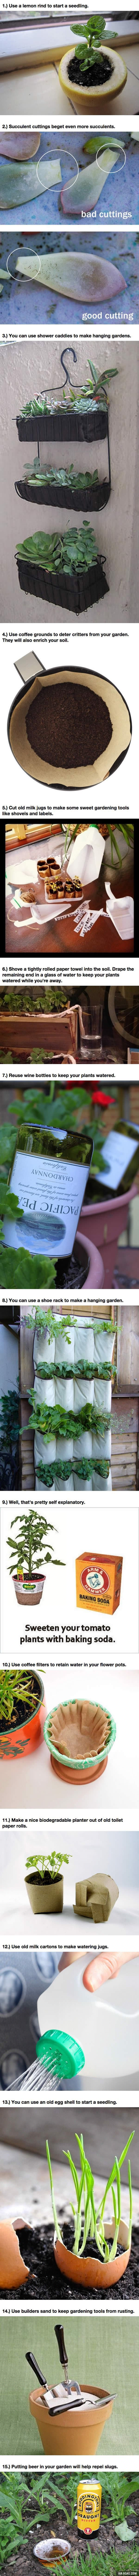 These 15 Brilliant Outdoor Hacks Will Change Your Life Forever. Totally Trying Them.